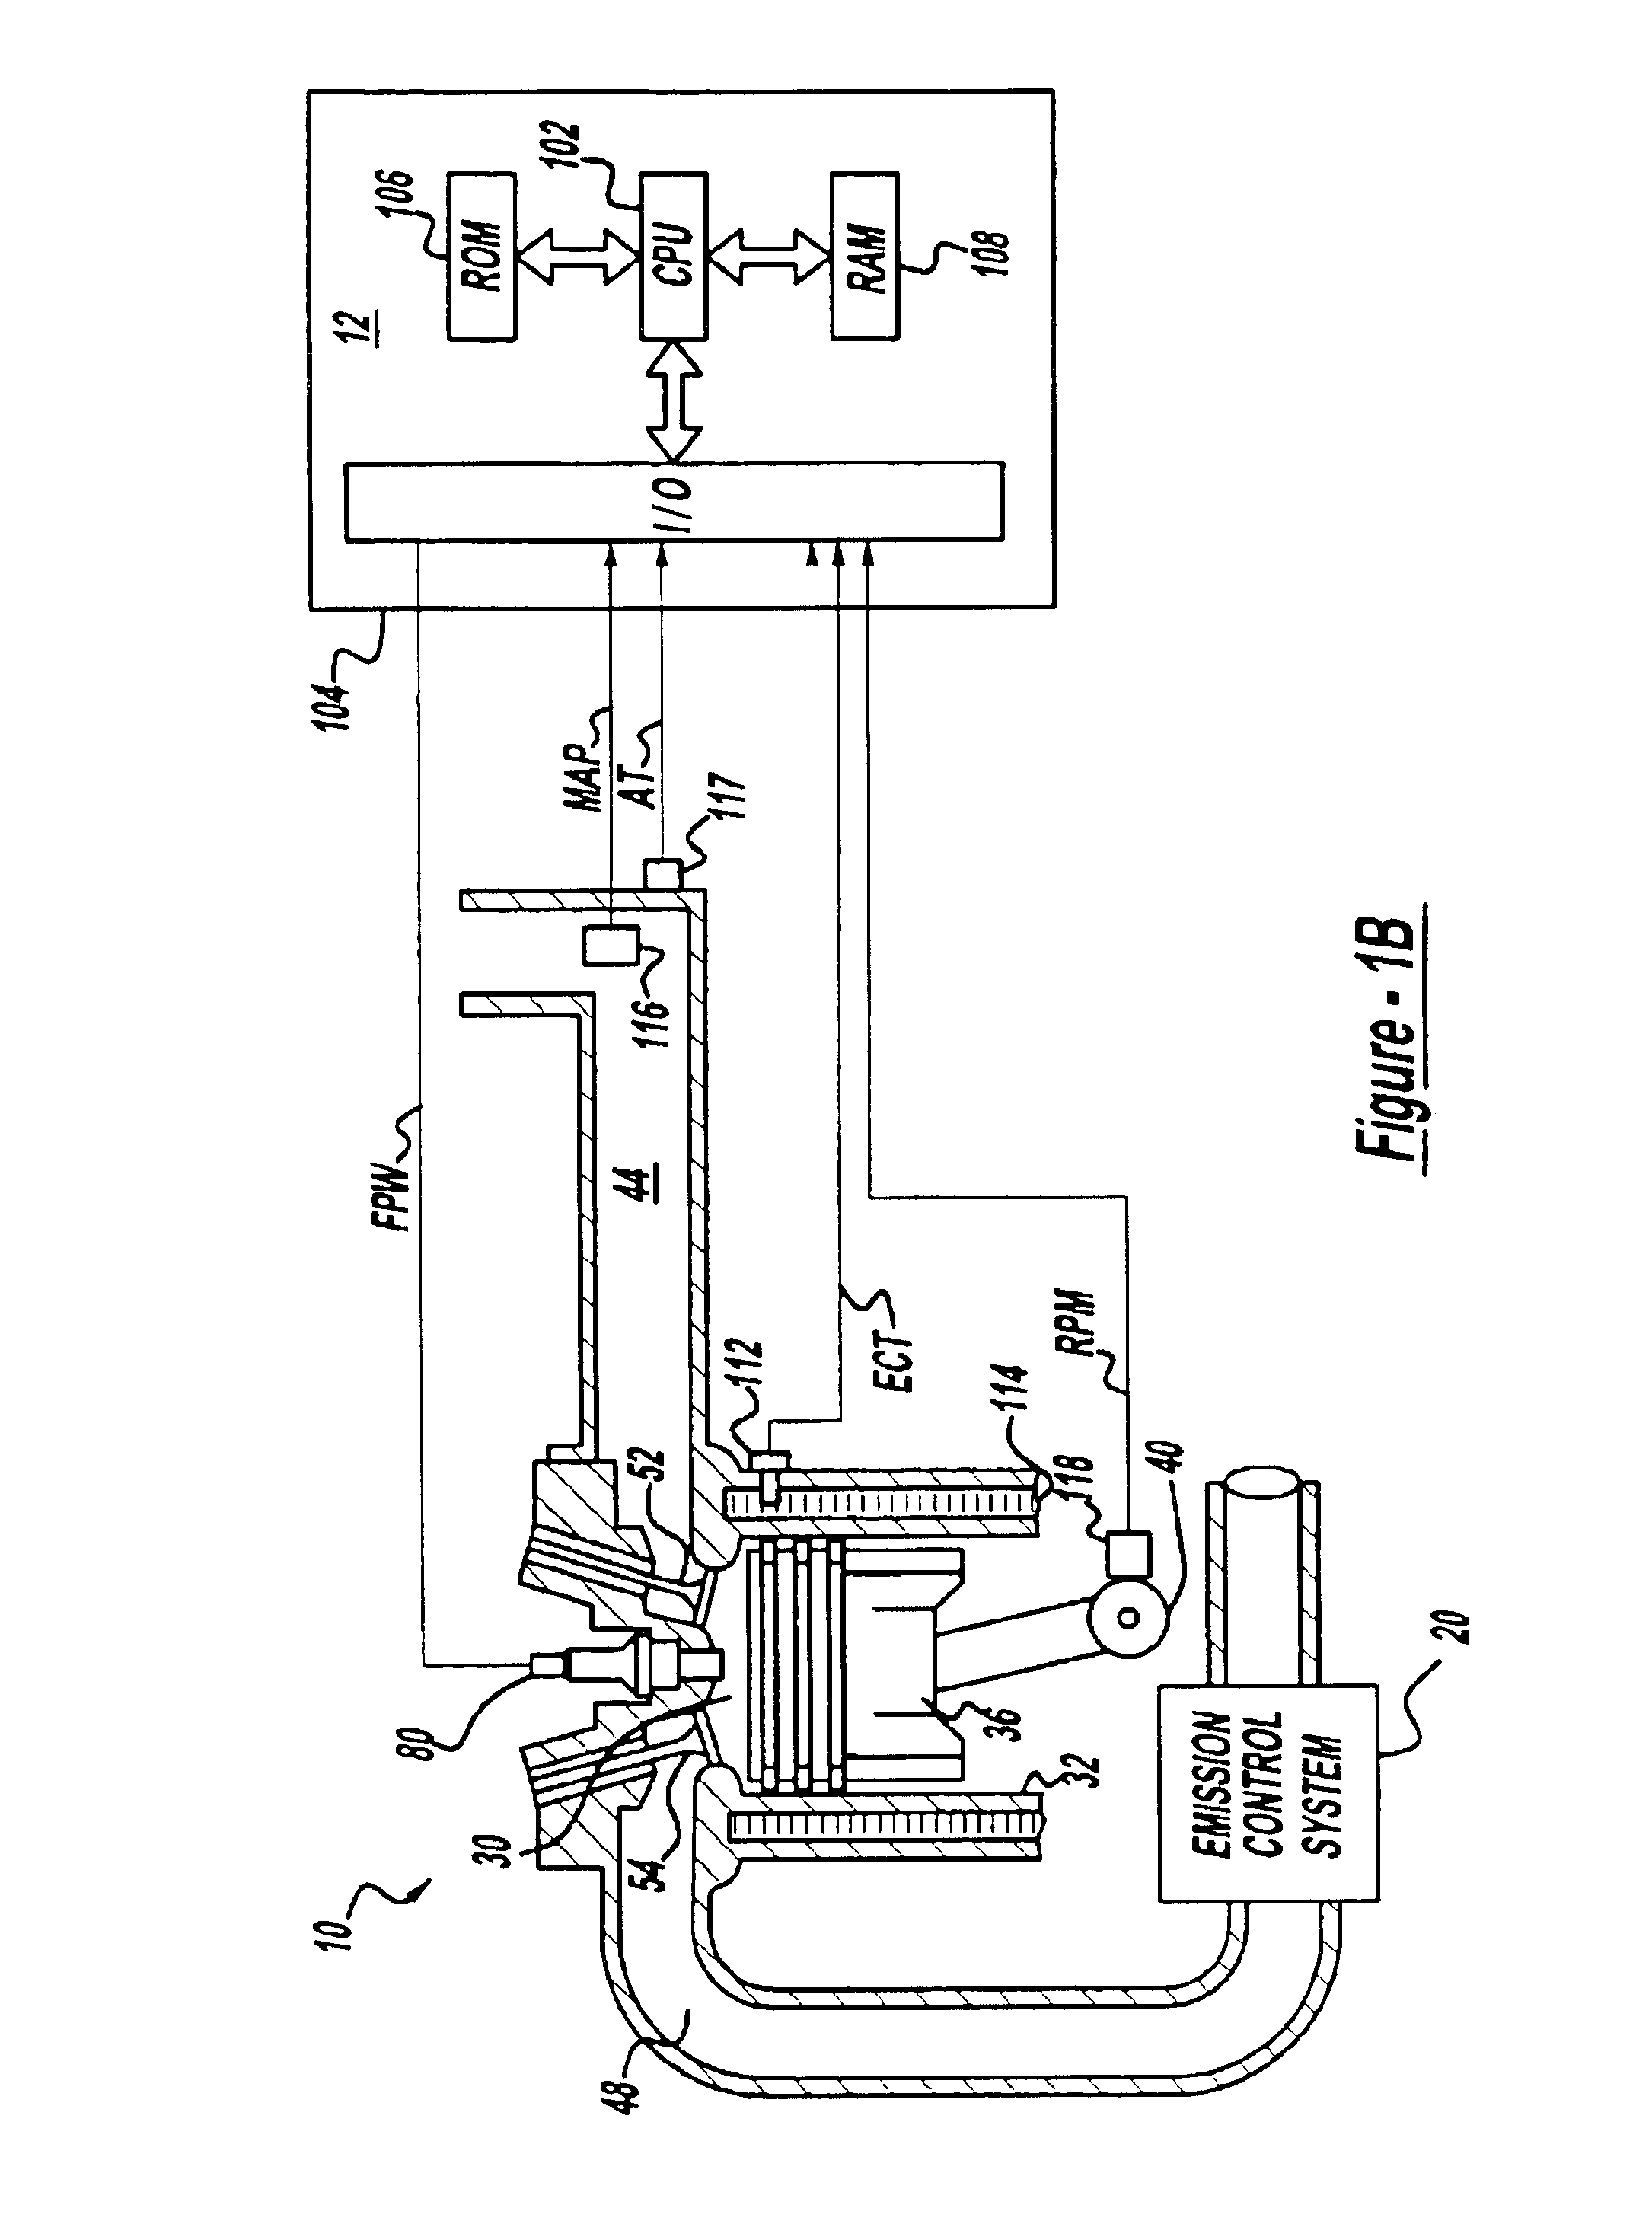 US20100111796 besides US6823663 in addition How To Diagnose Bad Catalytic Converter furthermore Diesel Exhaust Fluid Systems Diagram also US7998423. on selective catalytic reduction scr systems